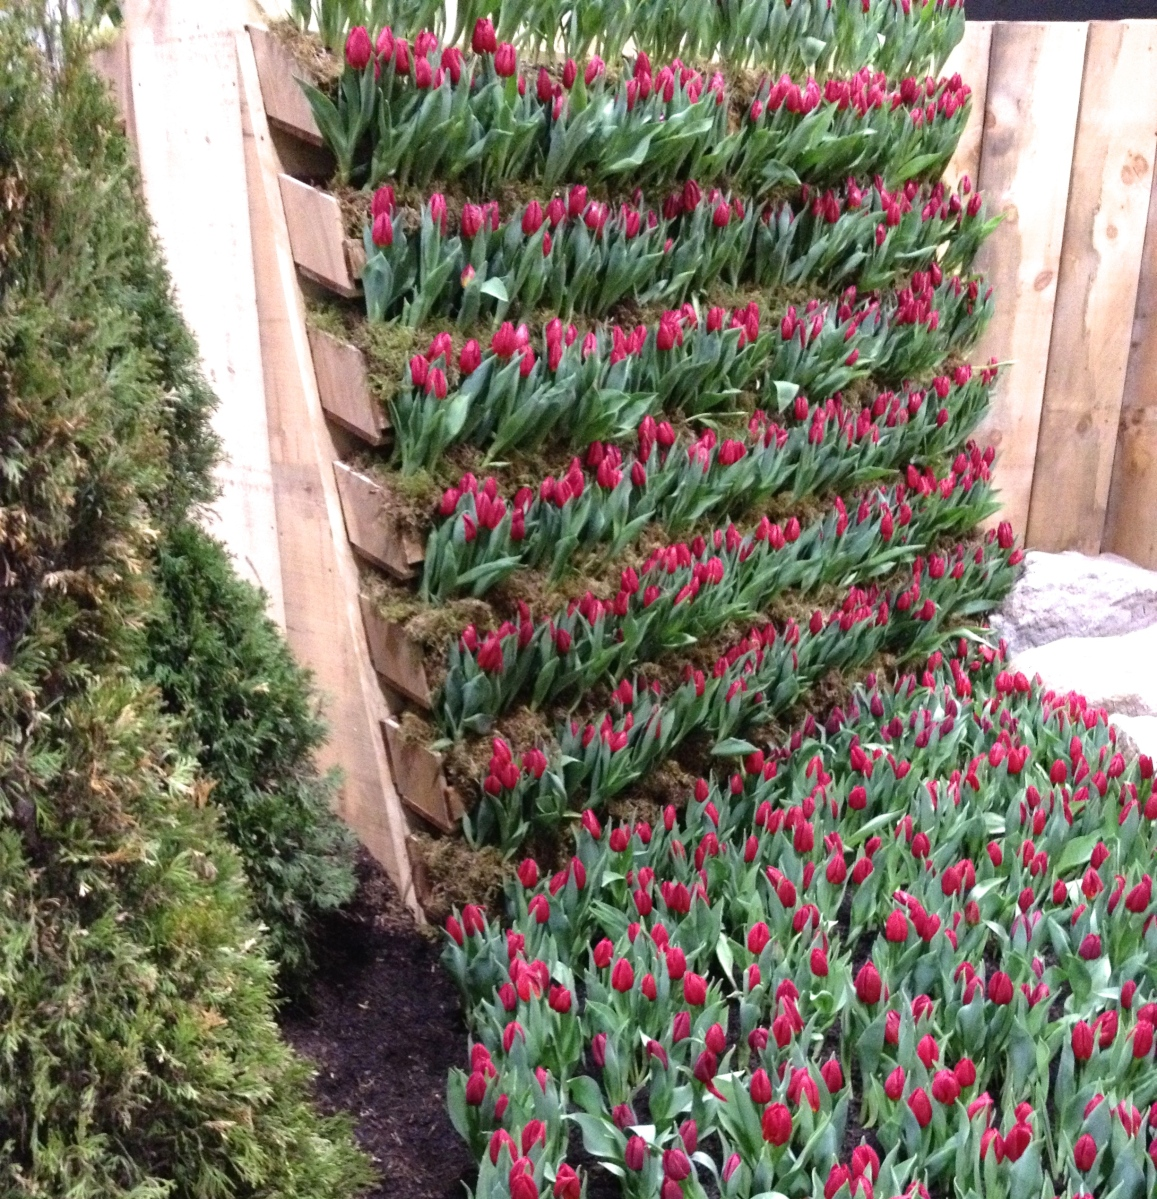 Tulips in a flower bed and on a wall.